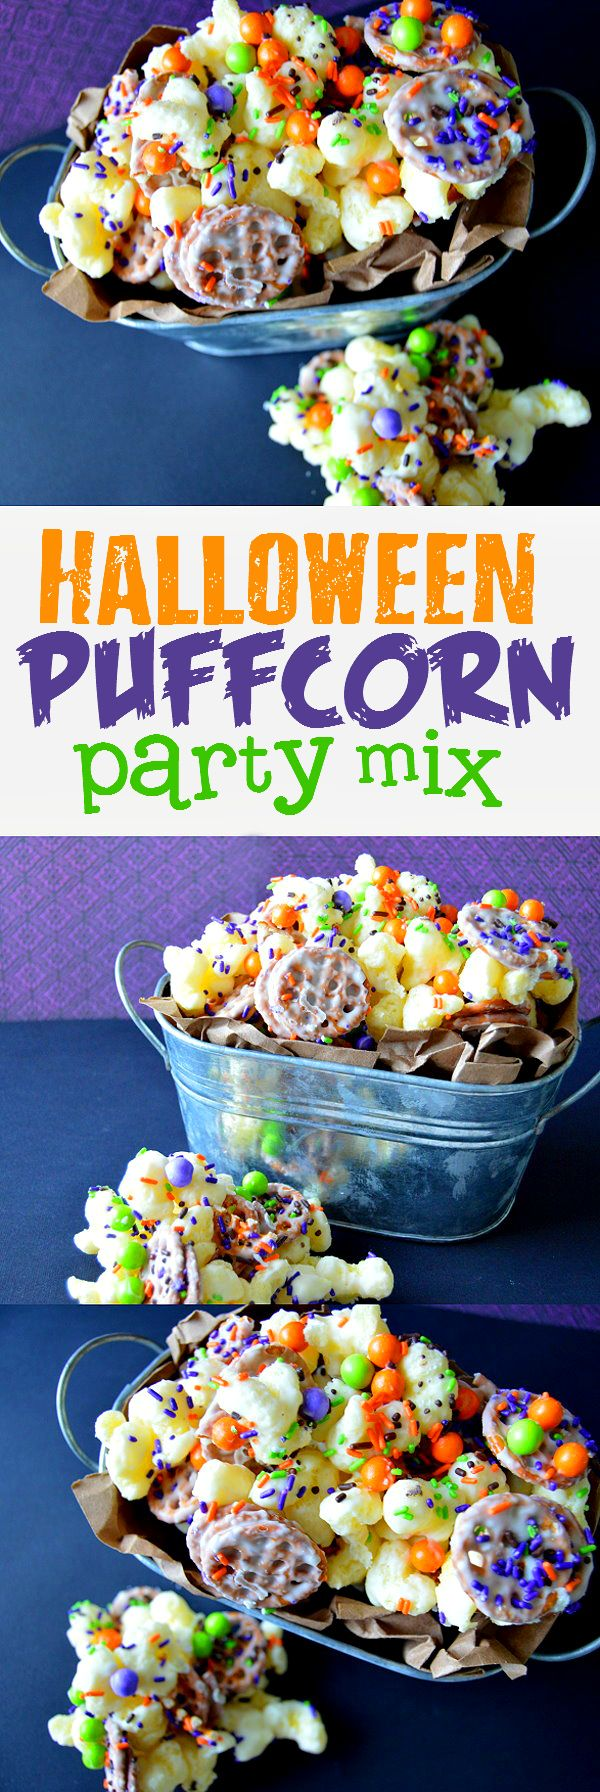 Halloween, colorful, puffcorn, chocolate, pretzels, sweet & salty, sprinkles, snack, treat, sweet, dessert, movie time, kid, mom, dad, family, crafts, food crafts, autumn, fall, homemade,